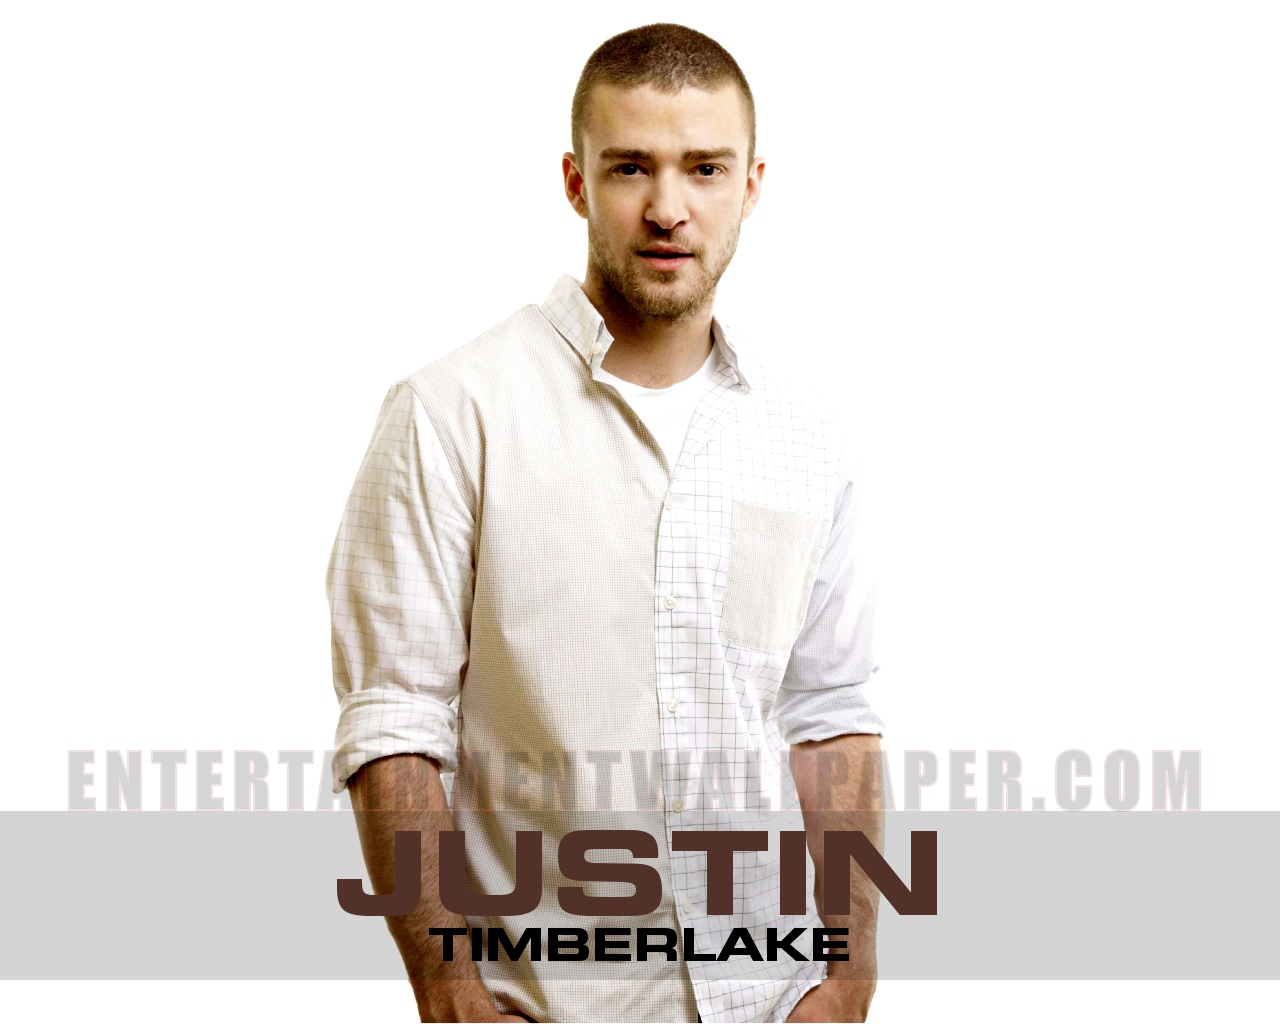 Justin Timberlake Wallpaper - Original size, download now.